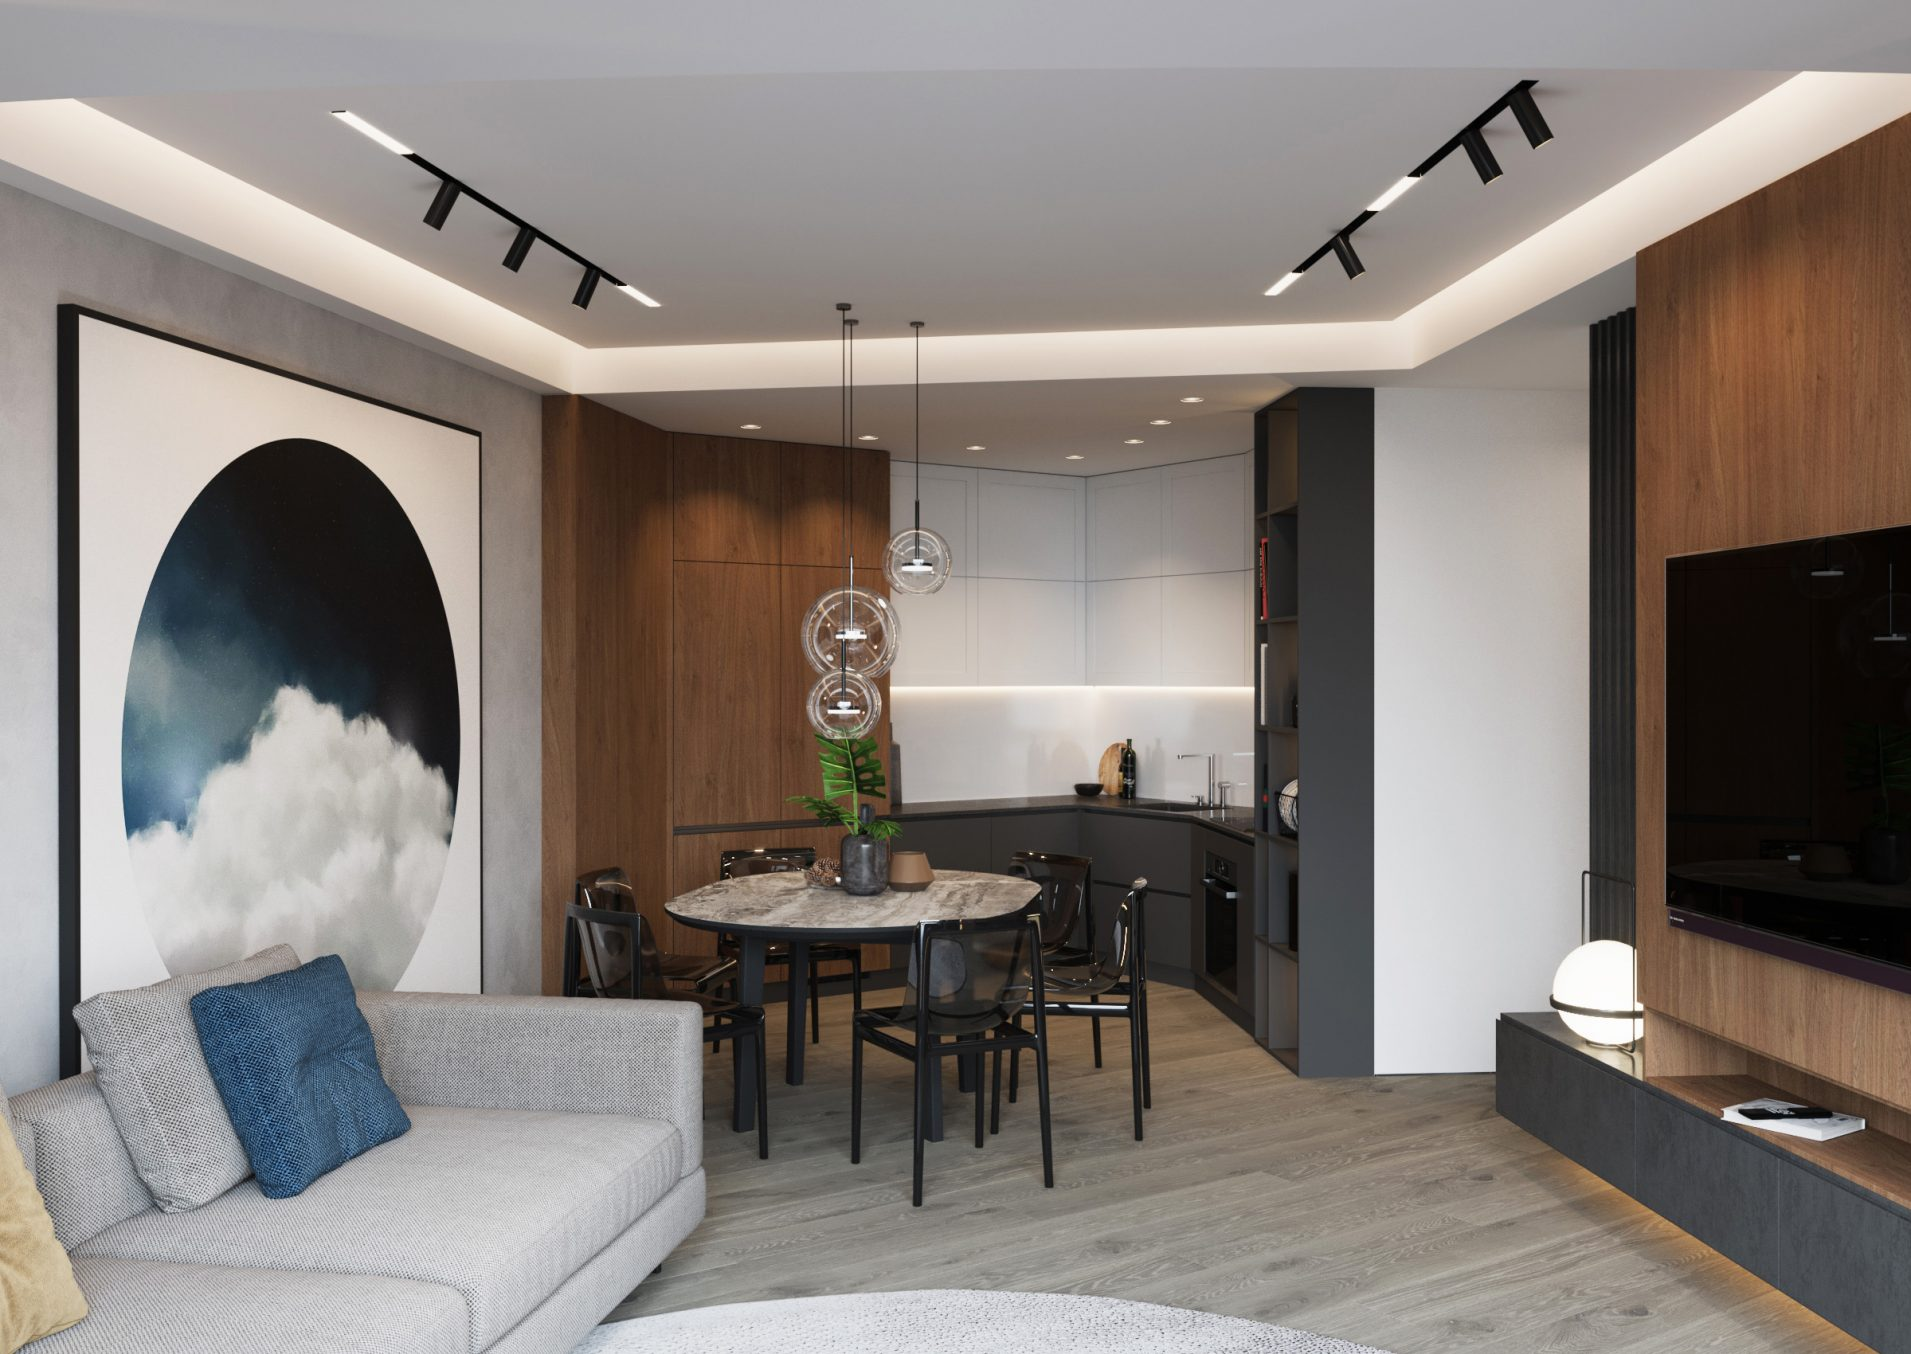 Midtown Apartment: modern interior design